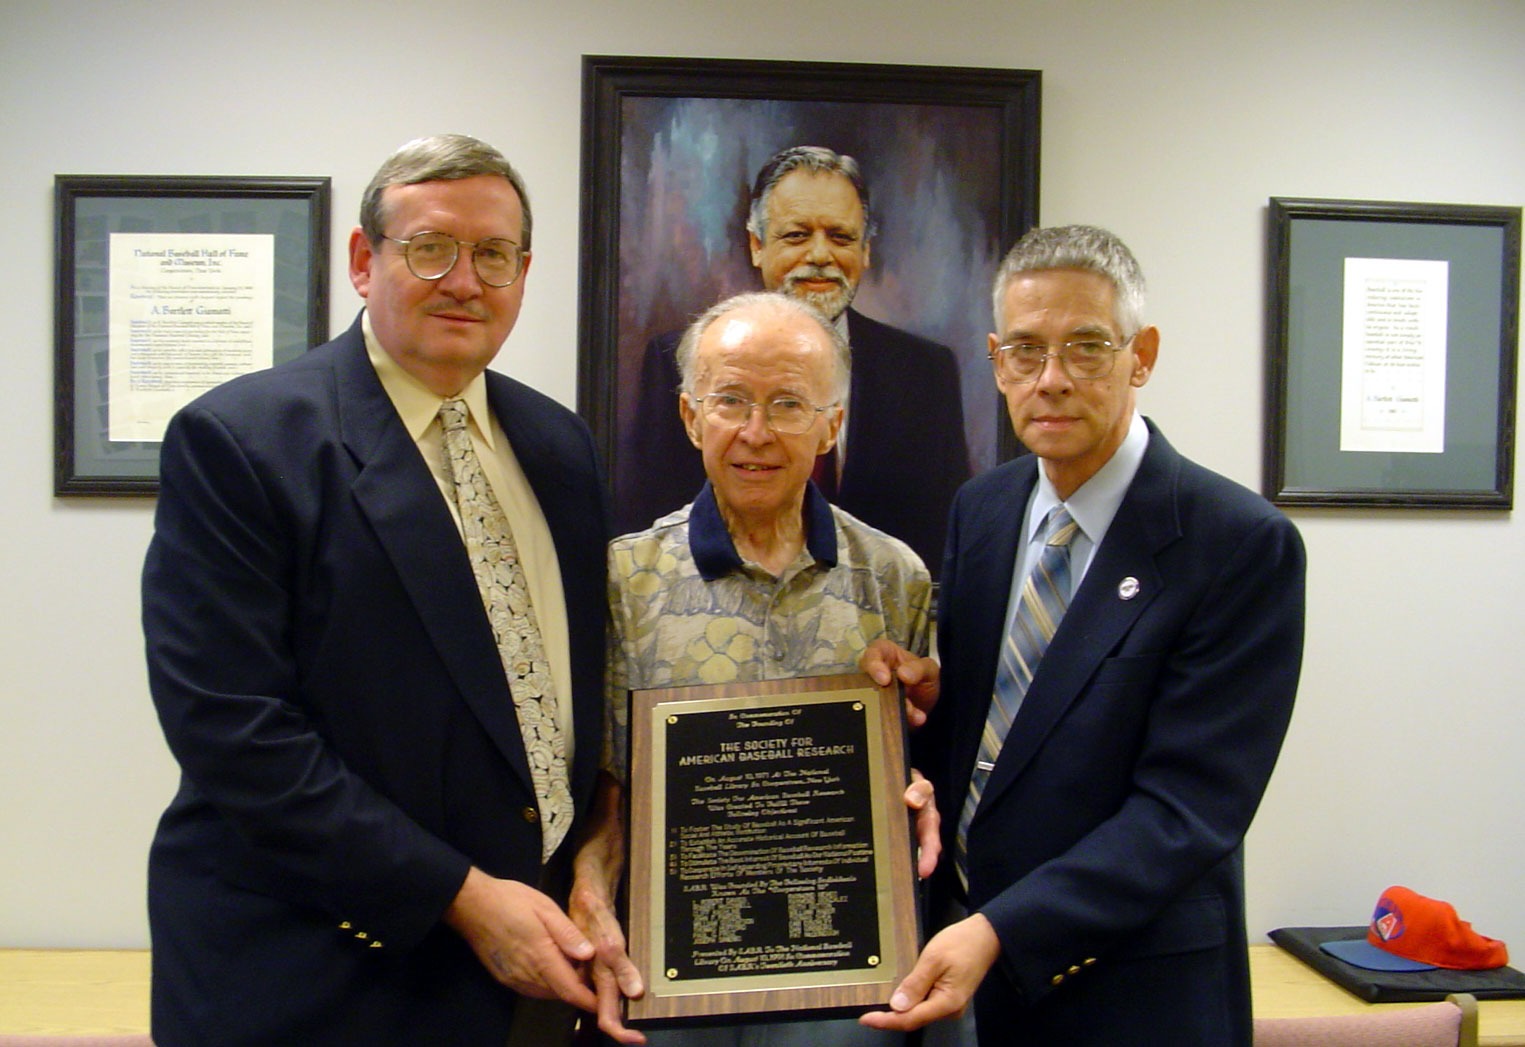 Tom Hufford, Cliff Kachline, John Pardon (in 2006)